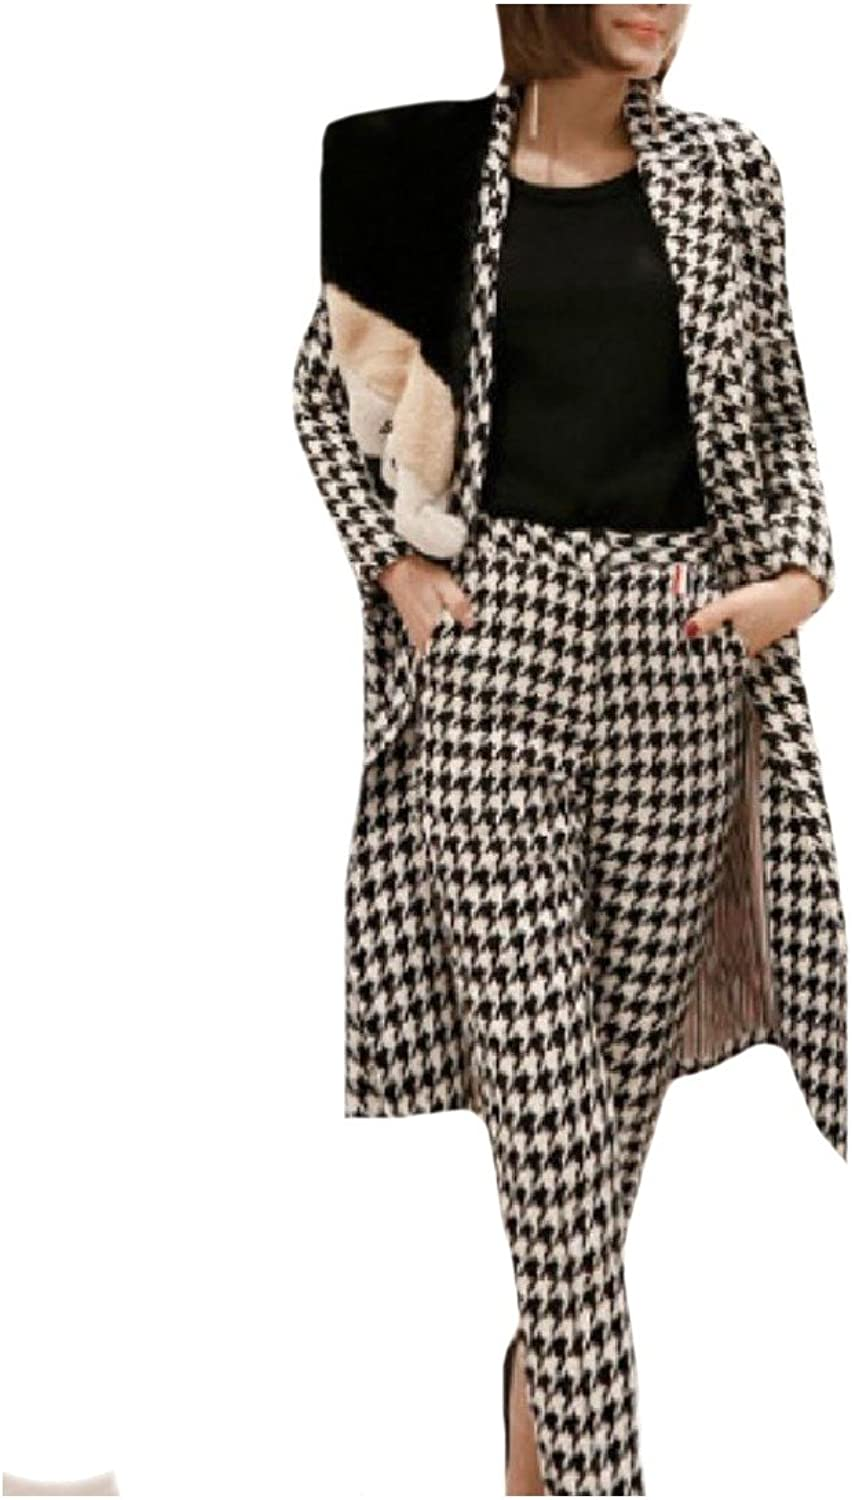 FreelyWomen Freely Women DoubleBreasted Notch Lapel Houndstooth Pea Coat Jackets